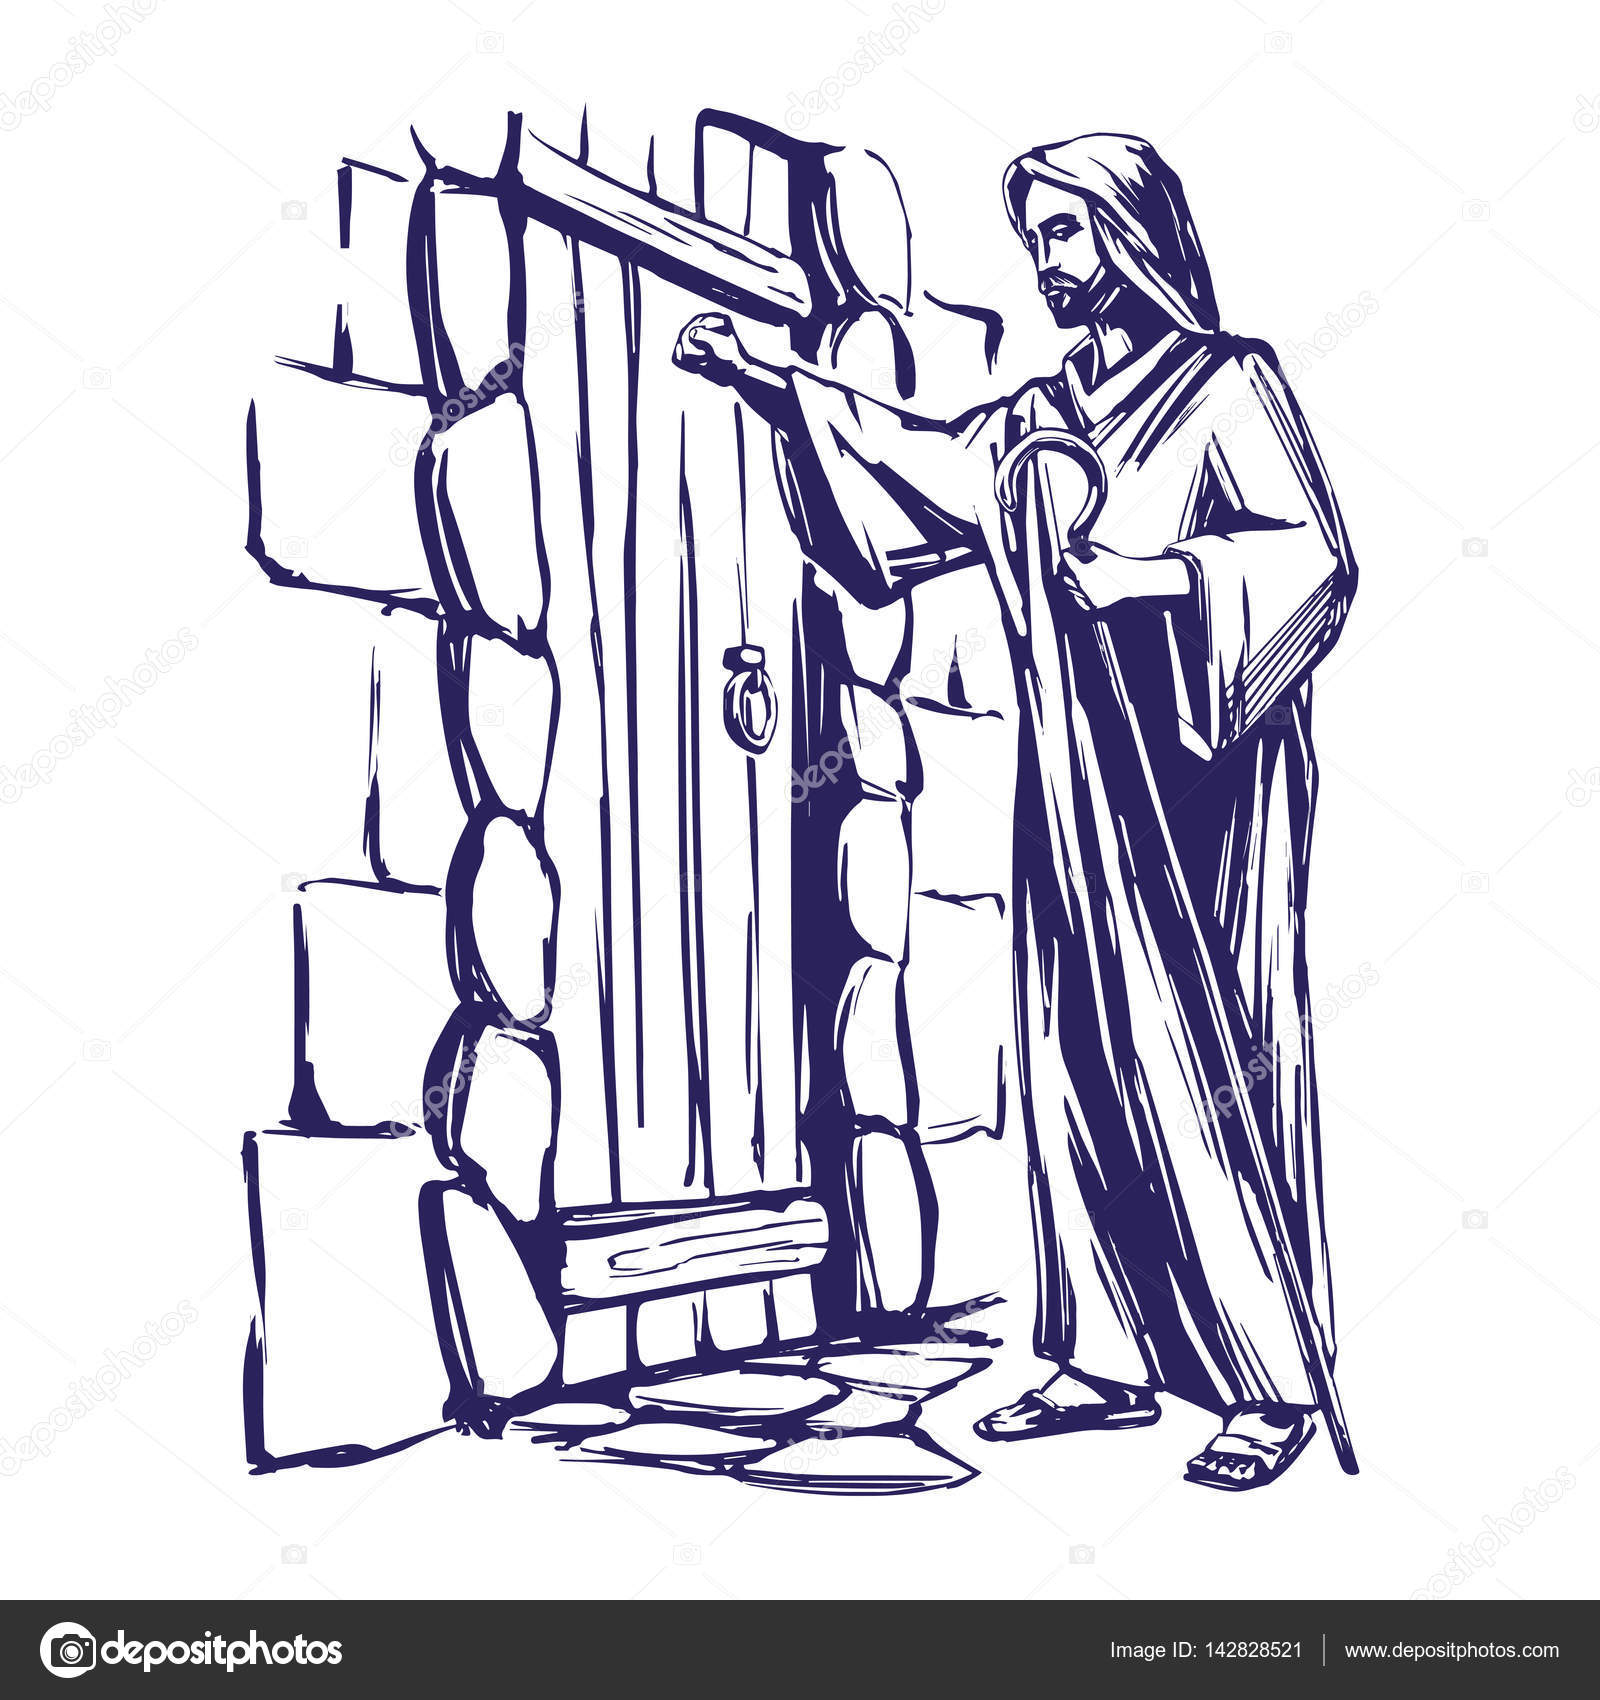 Jesus christ son of god knocking at the door symbol of jesus christ son of god knocking at the door symbol of christianity hand drawn buycottarizona Image collections